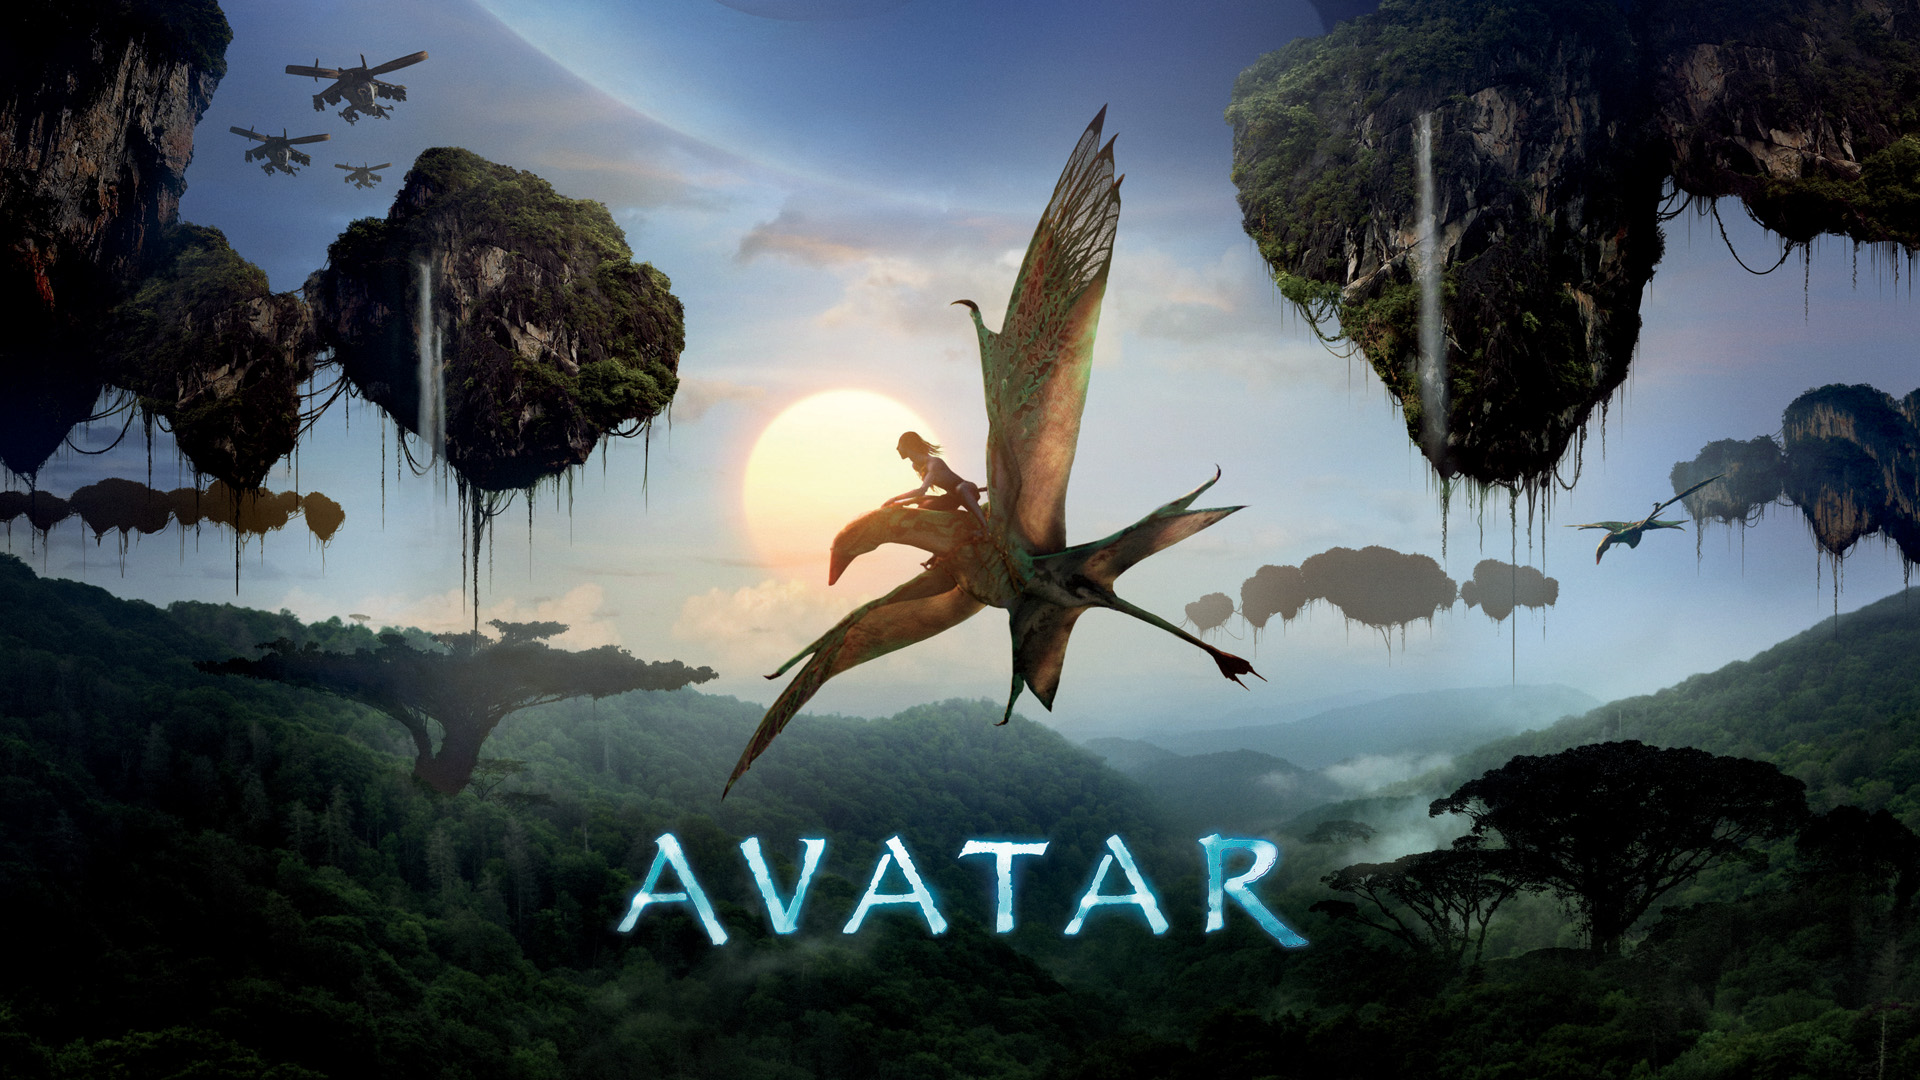 Avatar Wallpapers 1920x1080 Group (96+)